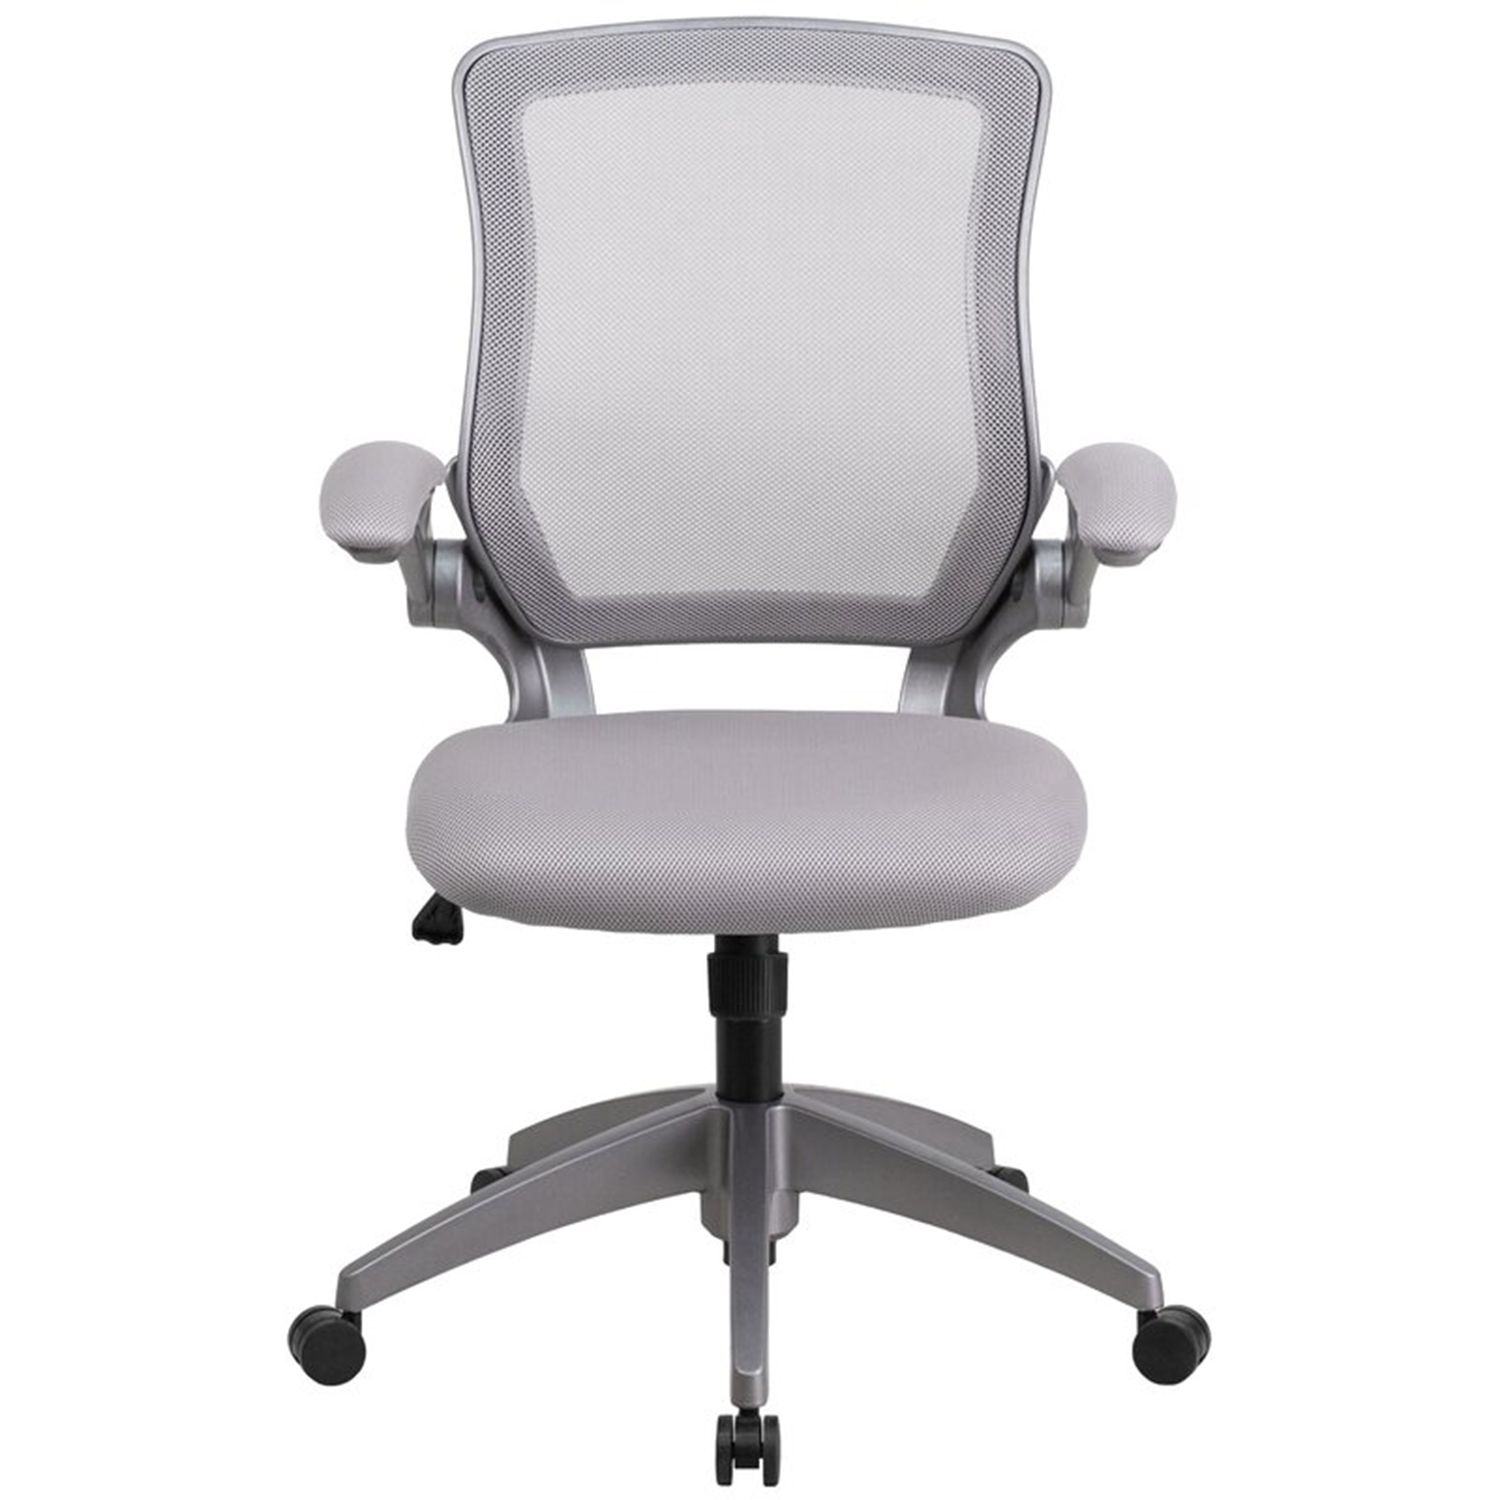 The 7 Most Comfortable Home Office Chairs According To Thousands Of Reviews In 2020 Home Office Chairs Most Comfortable Office Chair Task Chair